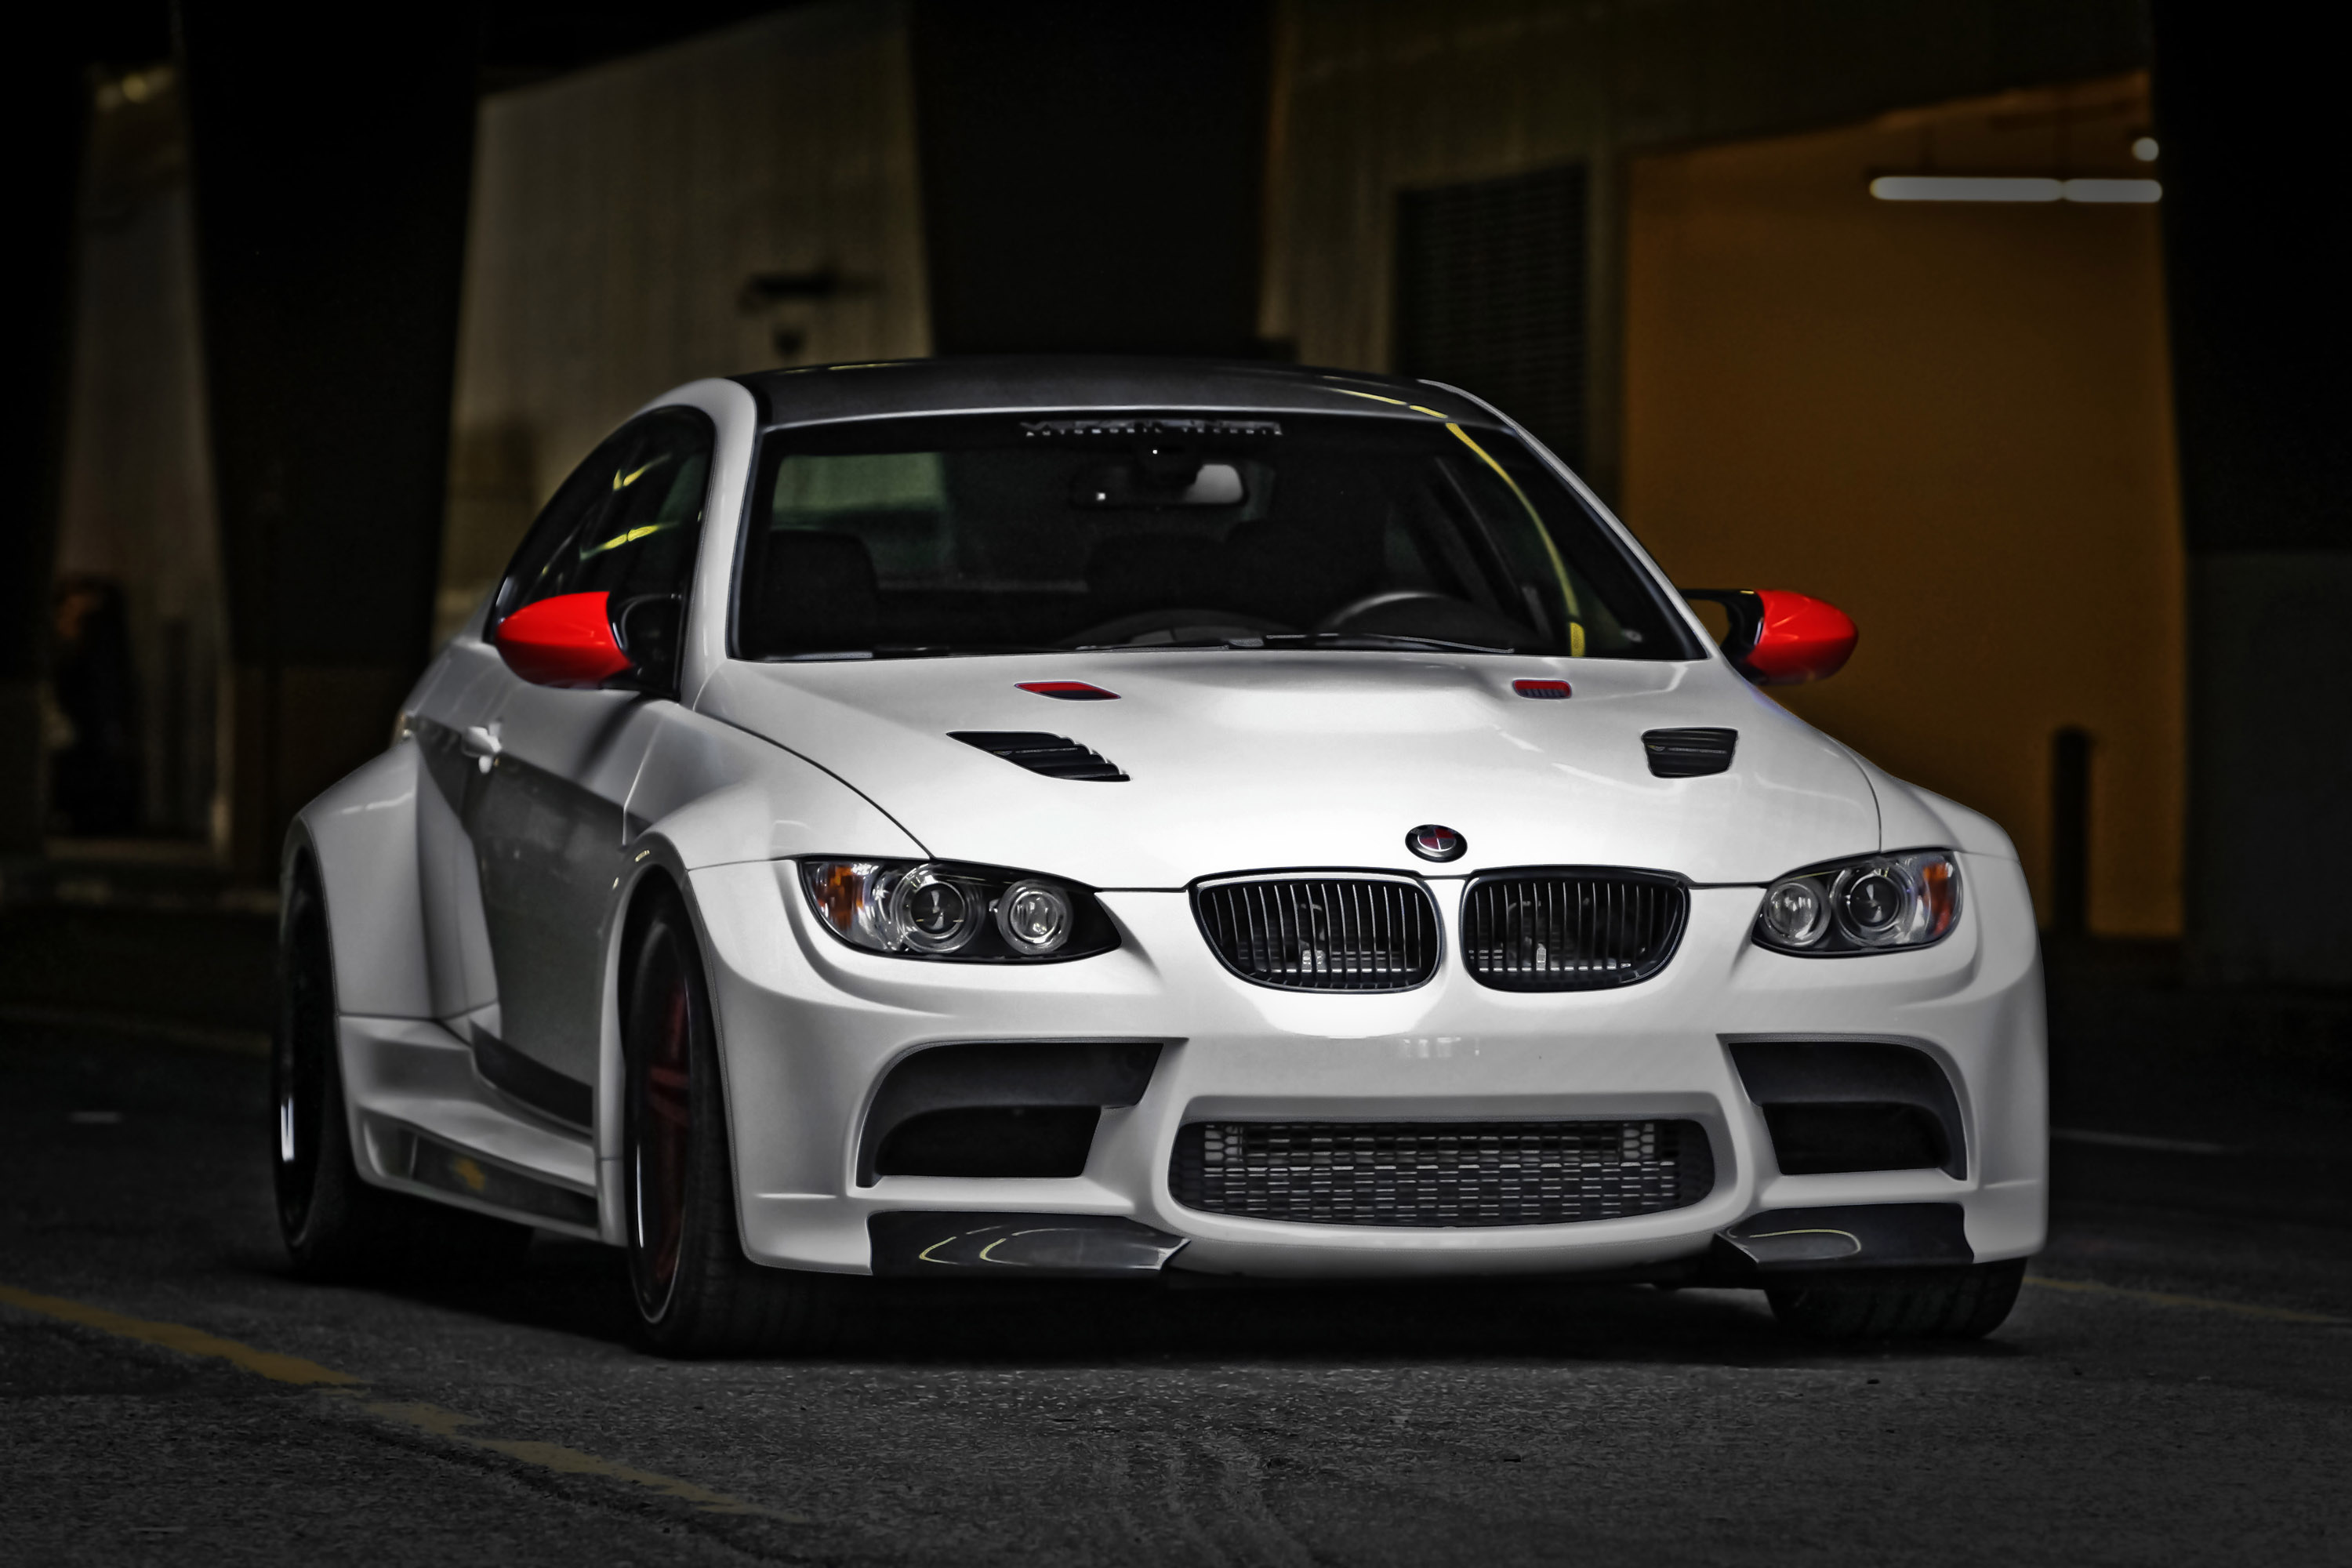 bmw m3 gtrs3 wallpapers-#3